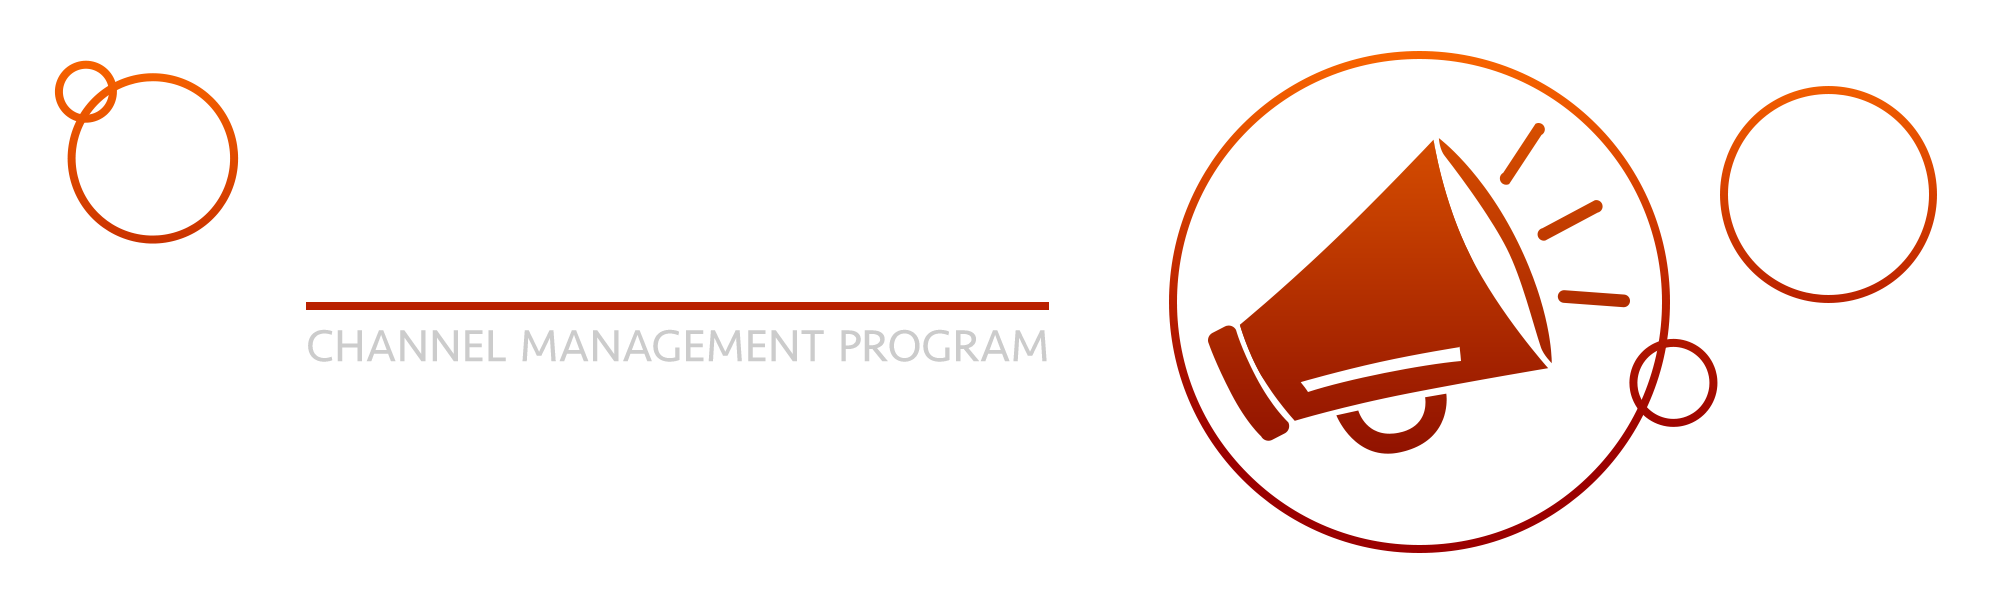 Channel Management Program: Marketing & Advertising